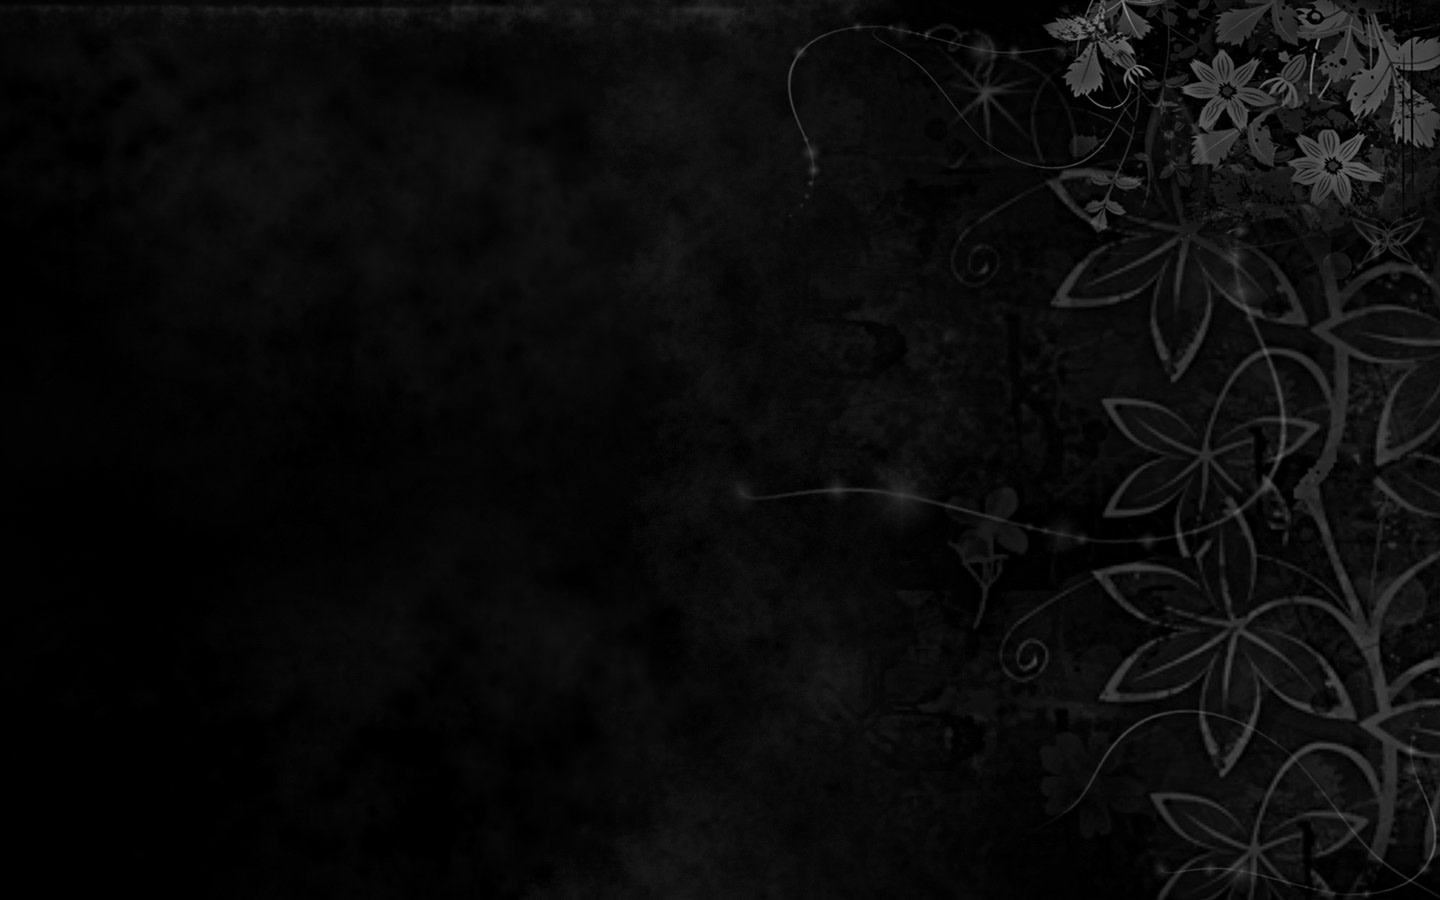 Black wallpaper black wallpaper black wallpaper black wallpaper black